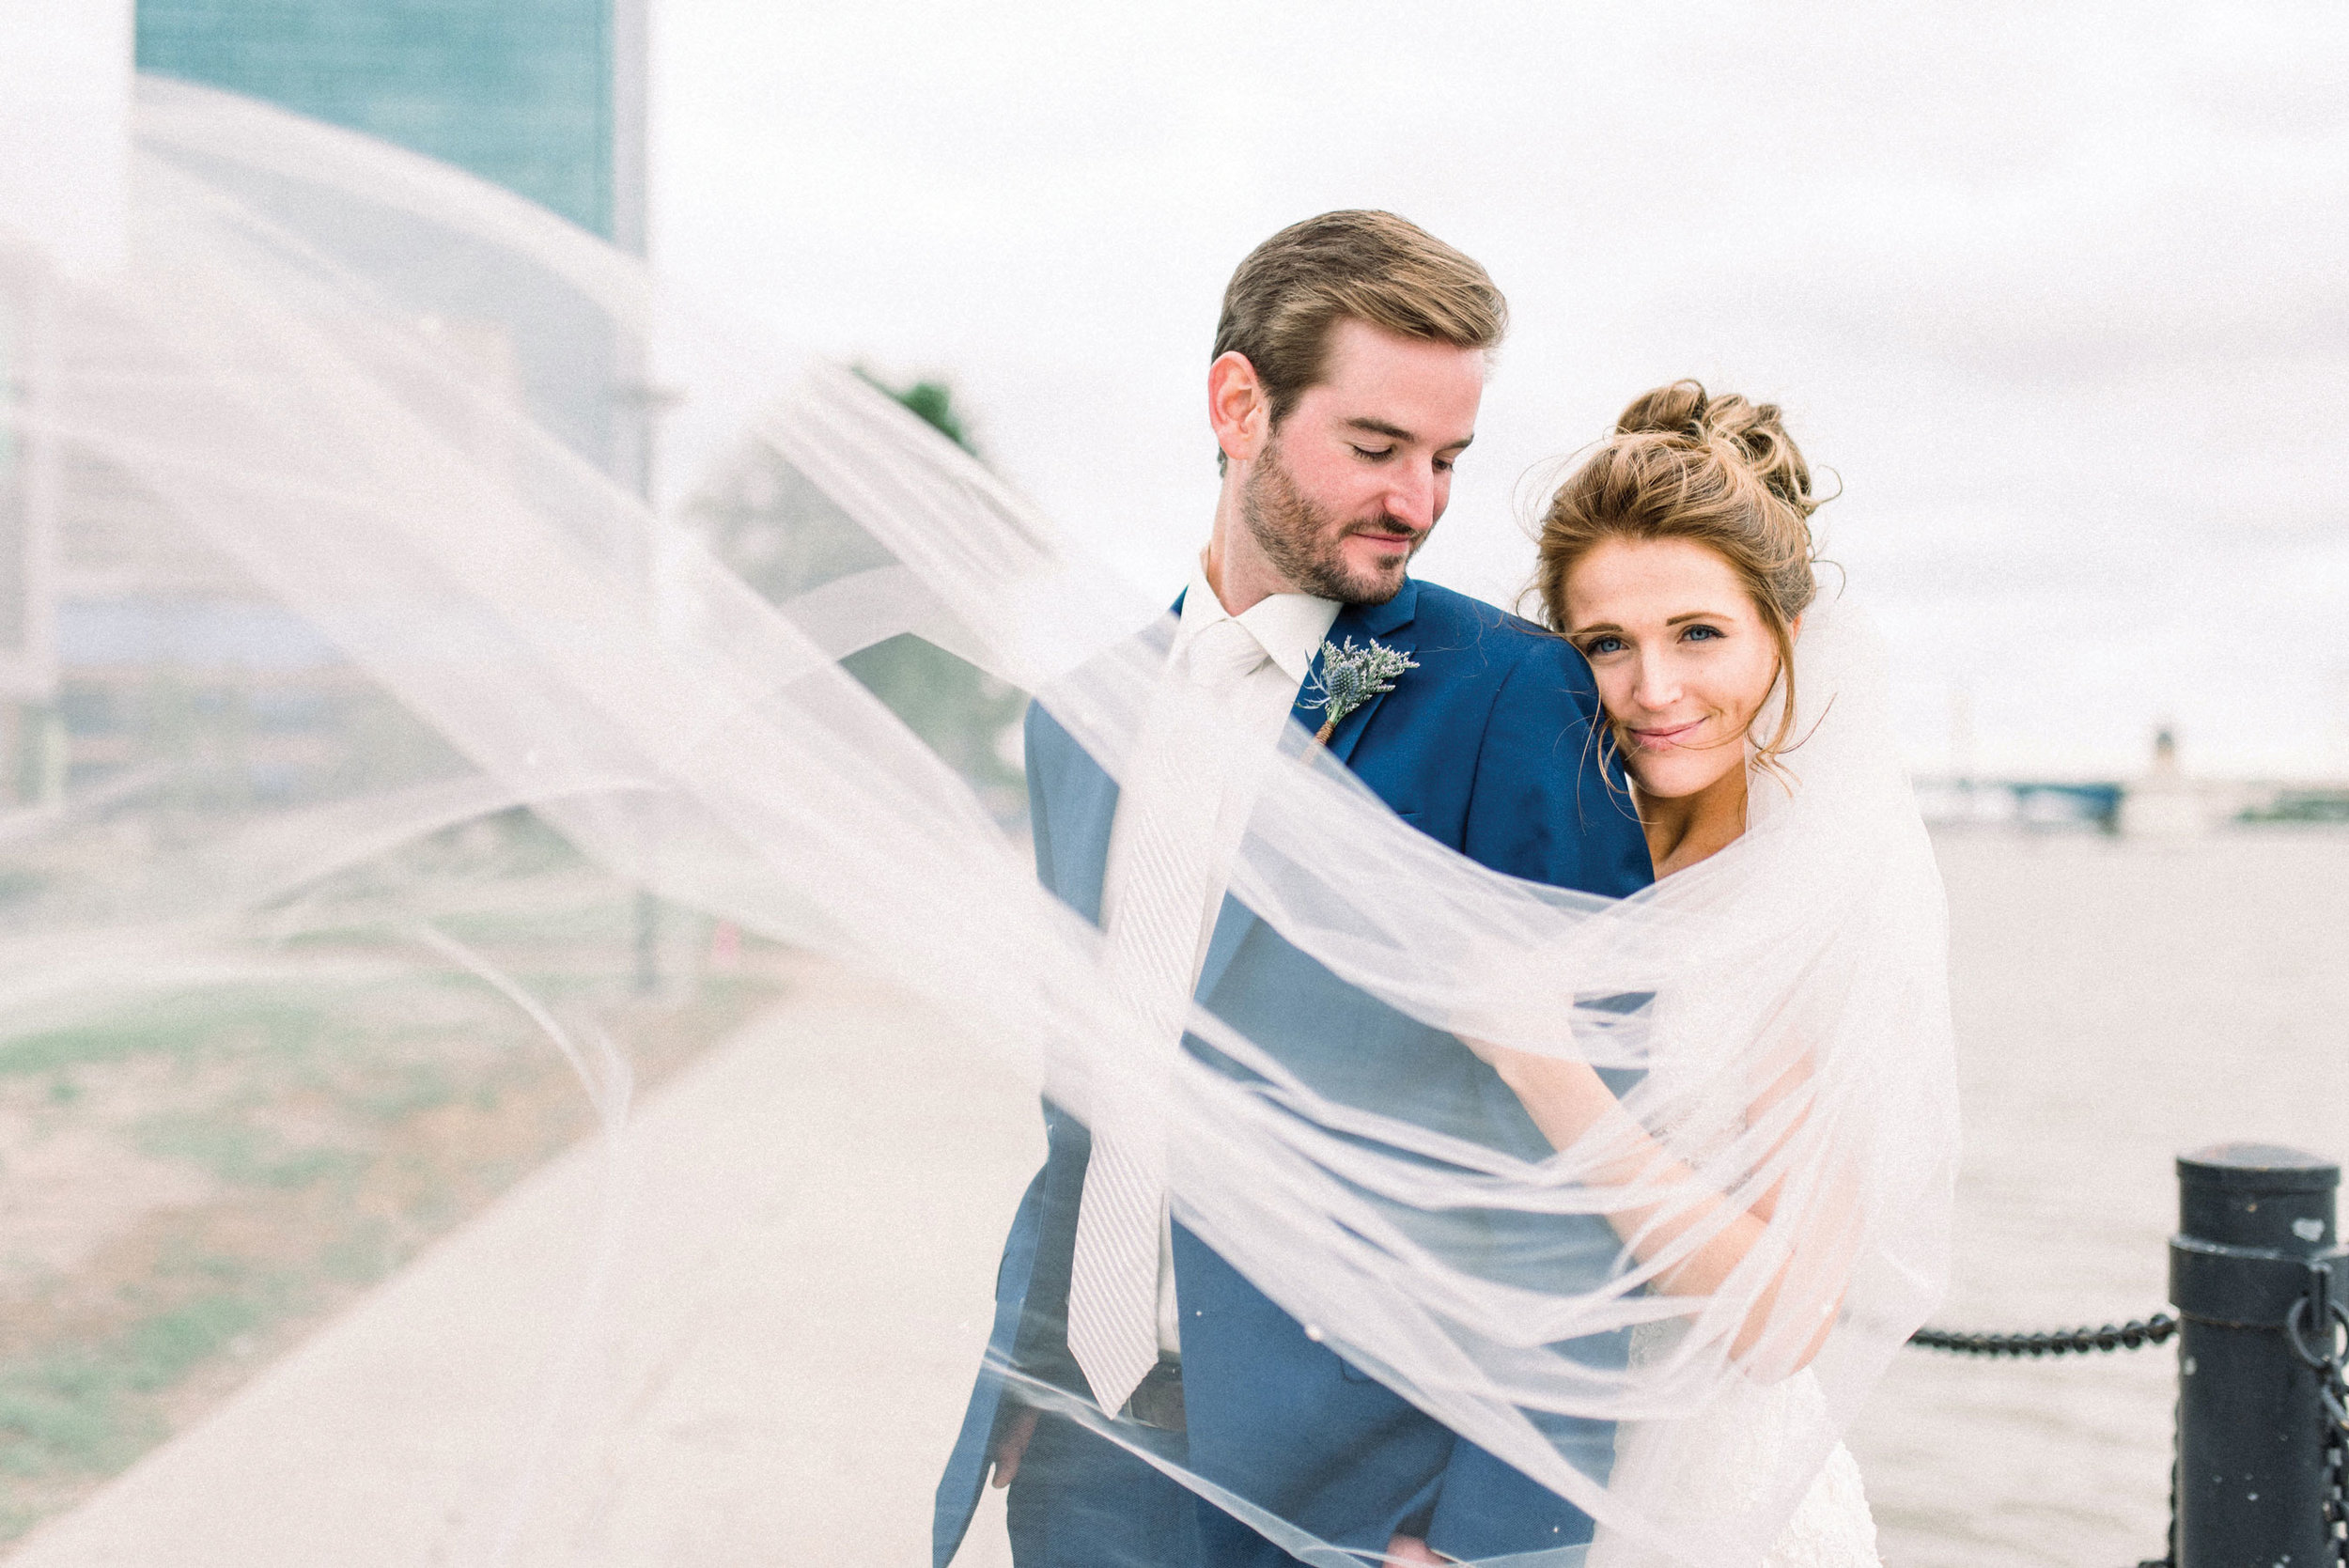 Fran + Max - Nothing was going to stop this bride from marrying the man of her dreams.